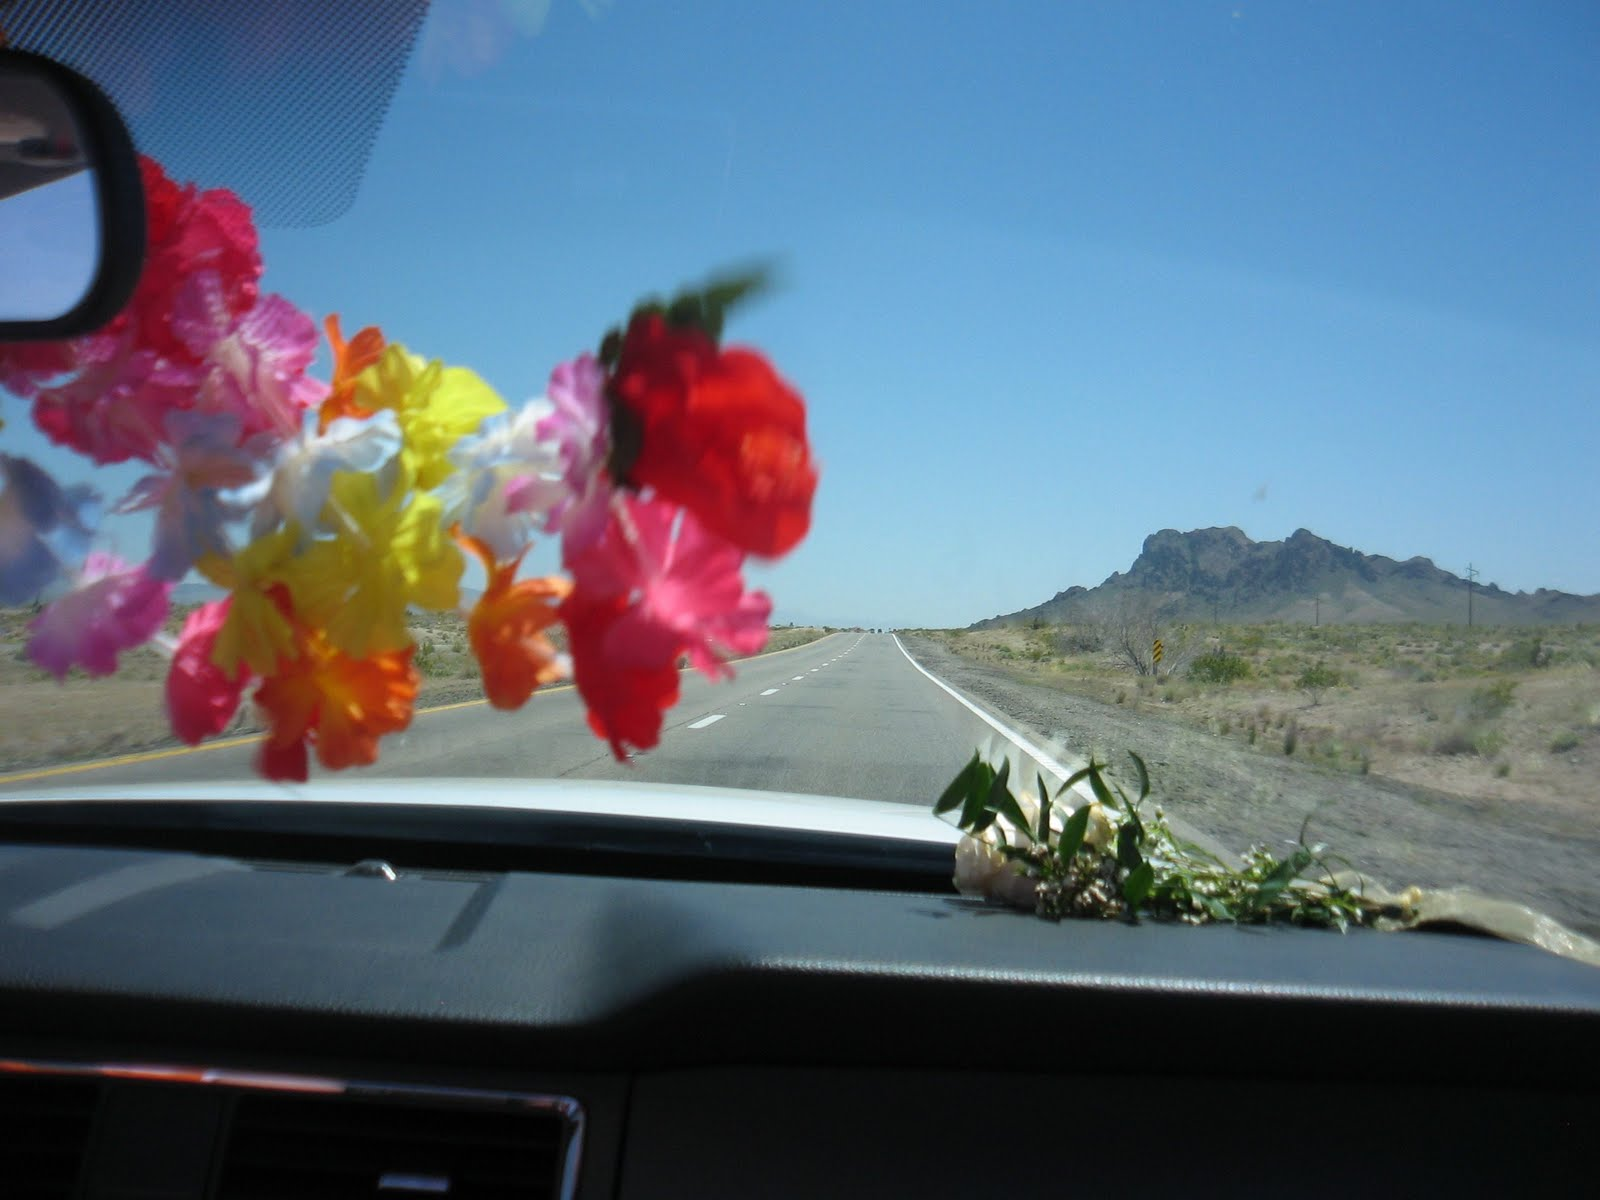 On%2BThe%2BRoad To learn more about descansos in New Mexico, read Descansos: An Interrupted ...